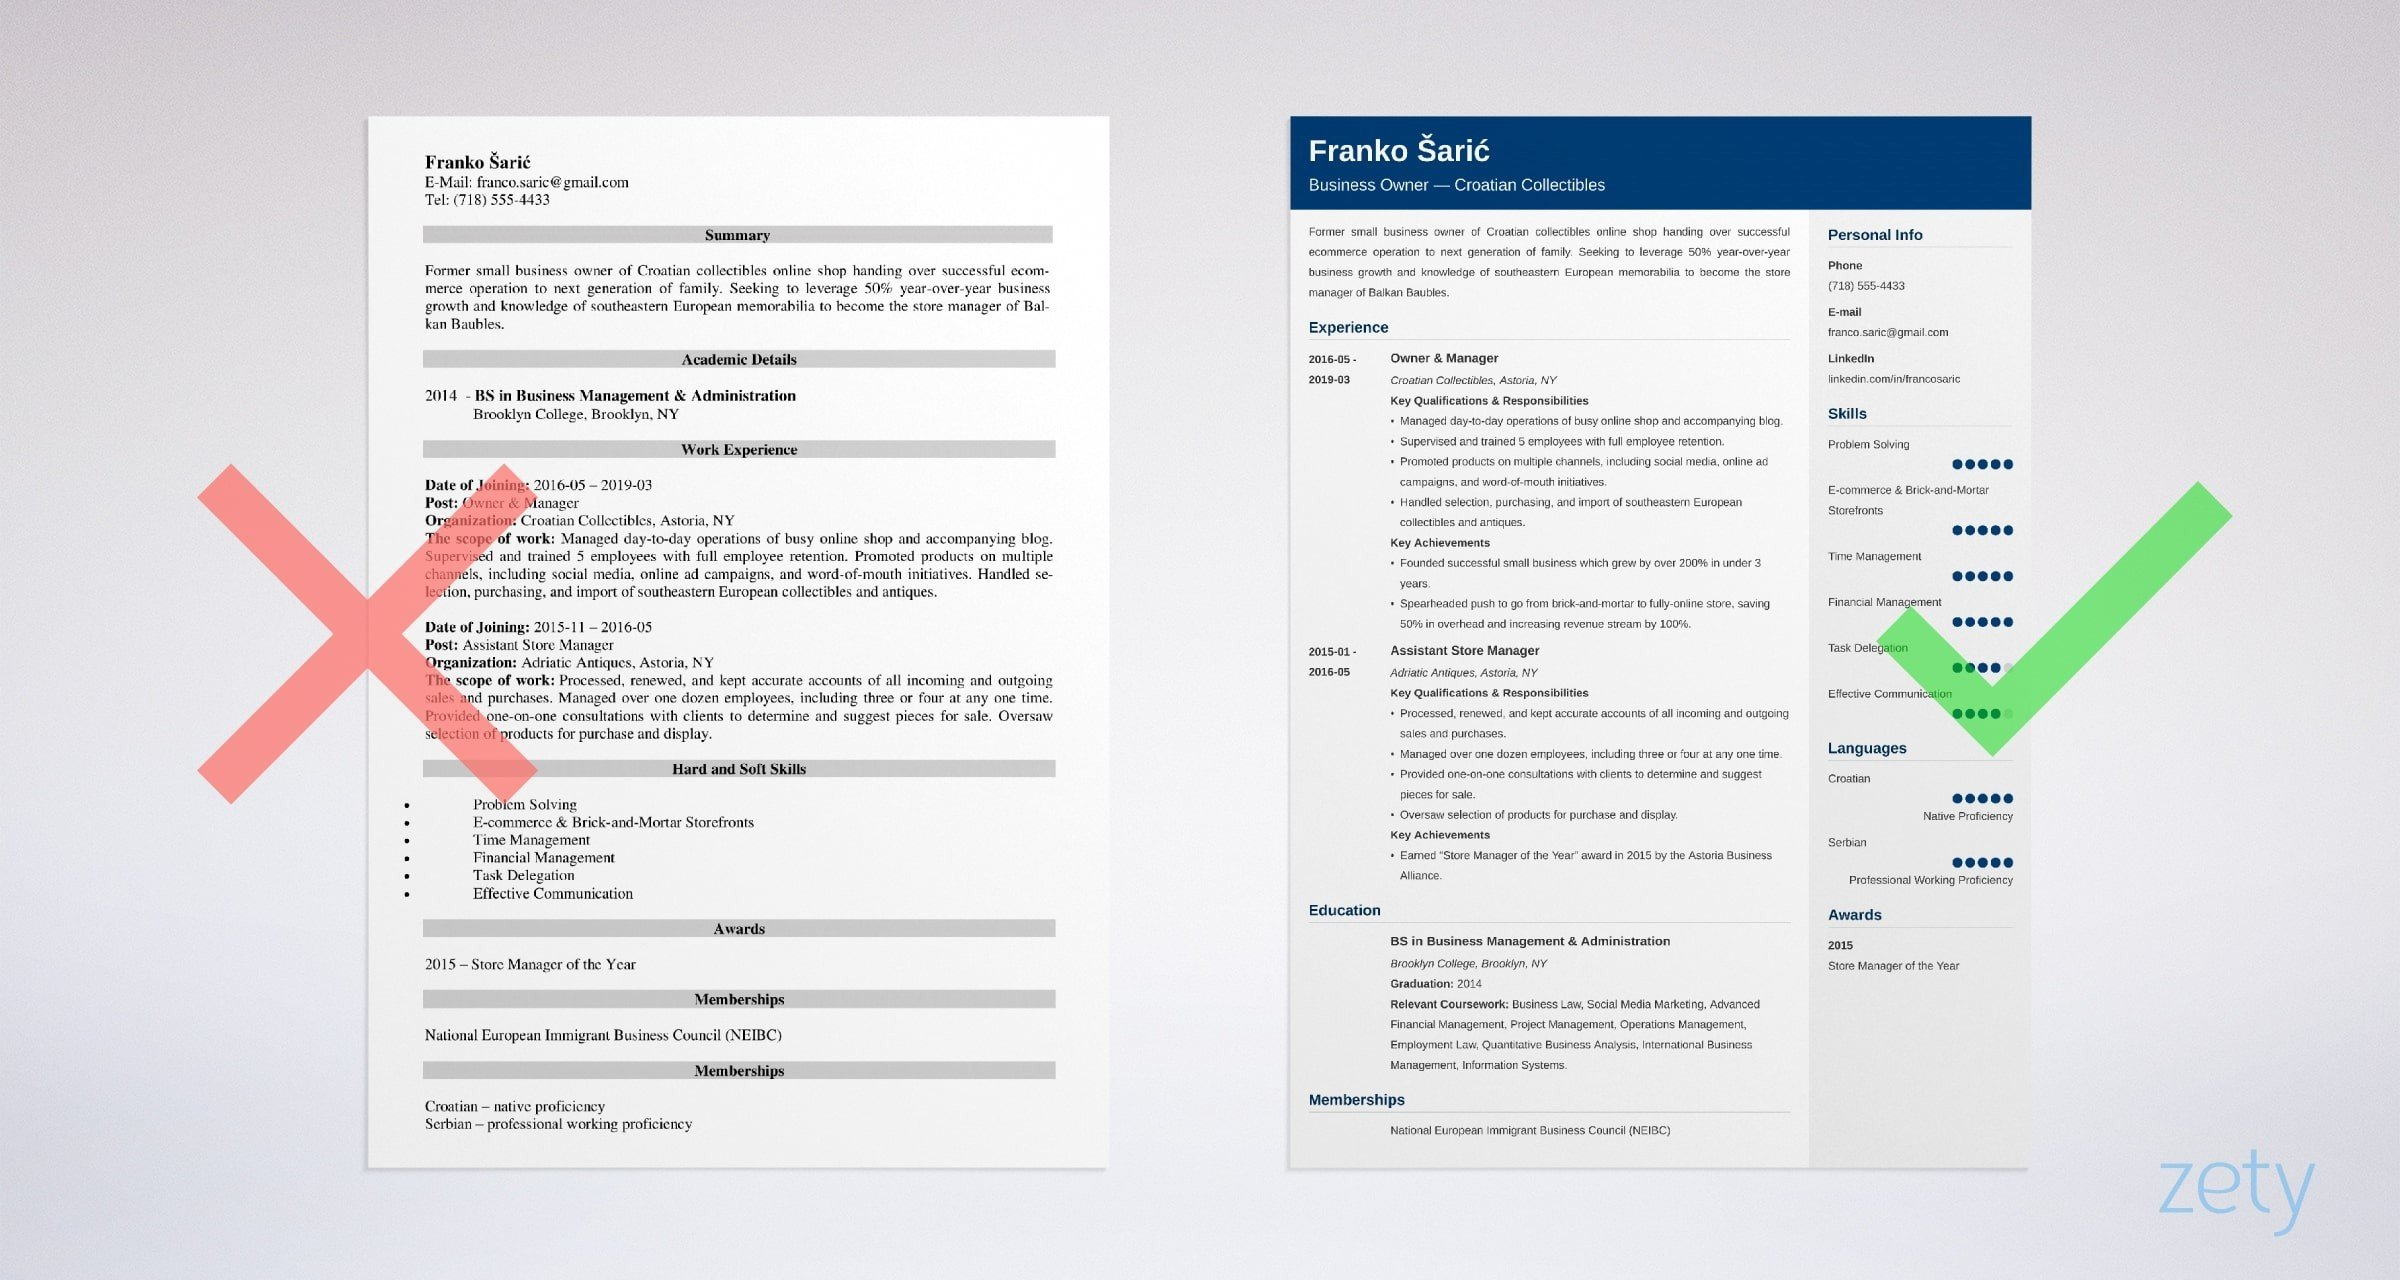 Business Management Resume Examples Former Business Owner Resume Sample Top Guide 20 Examples